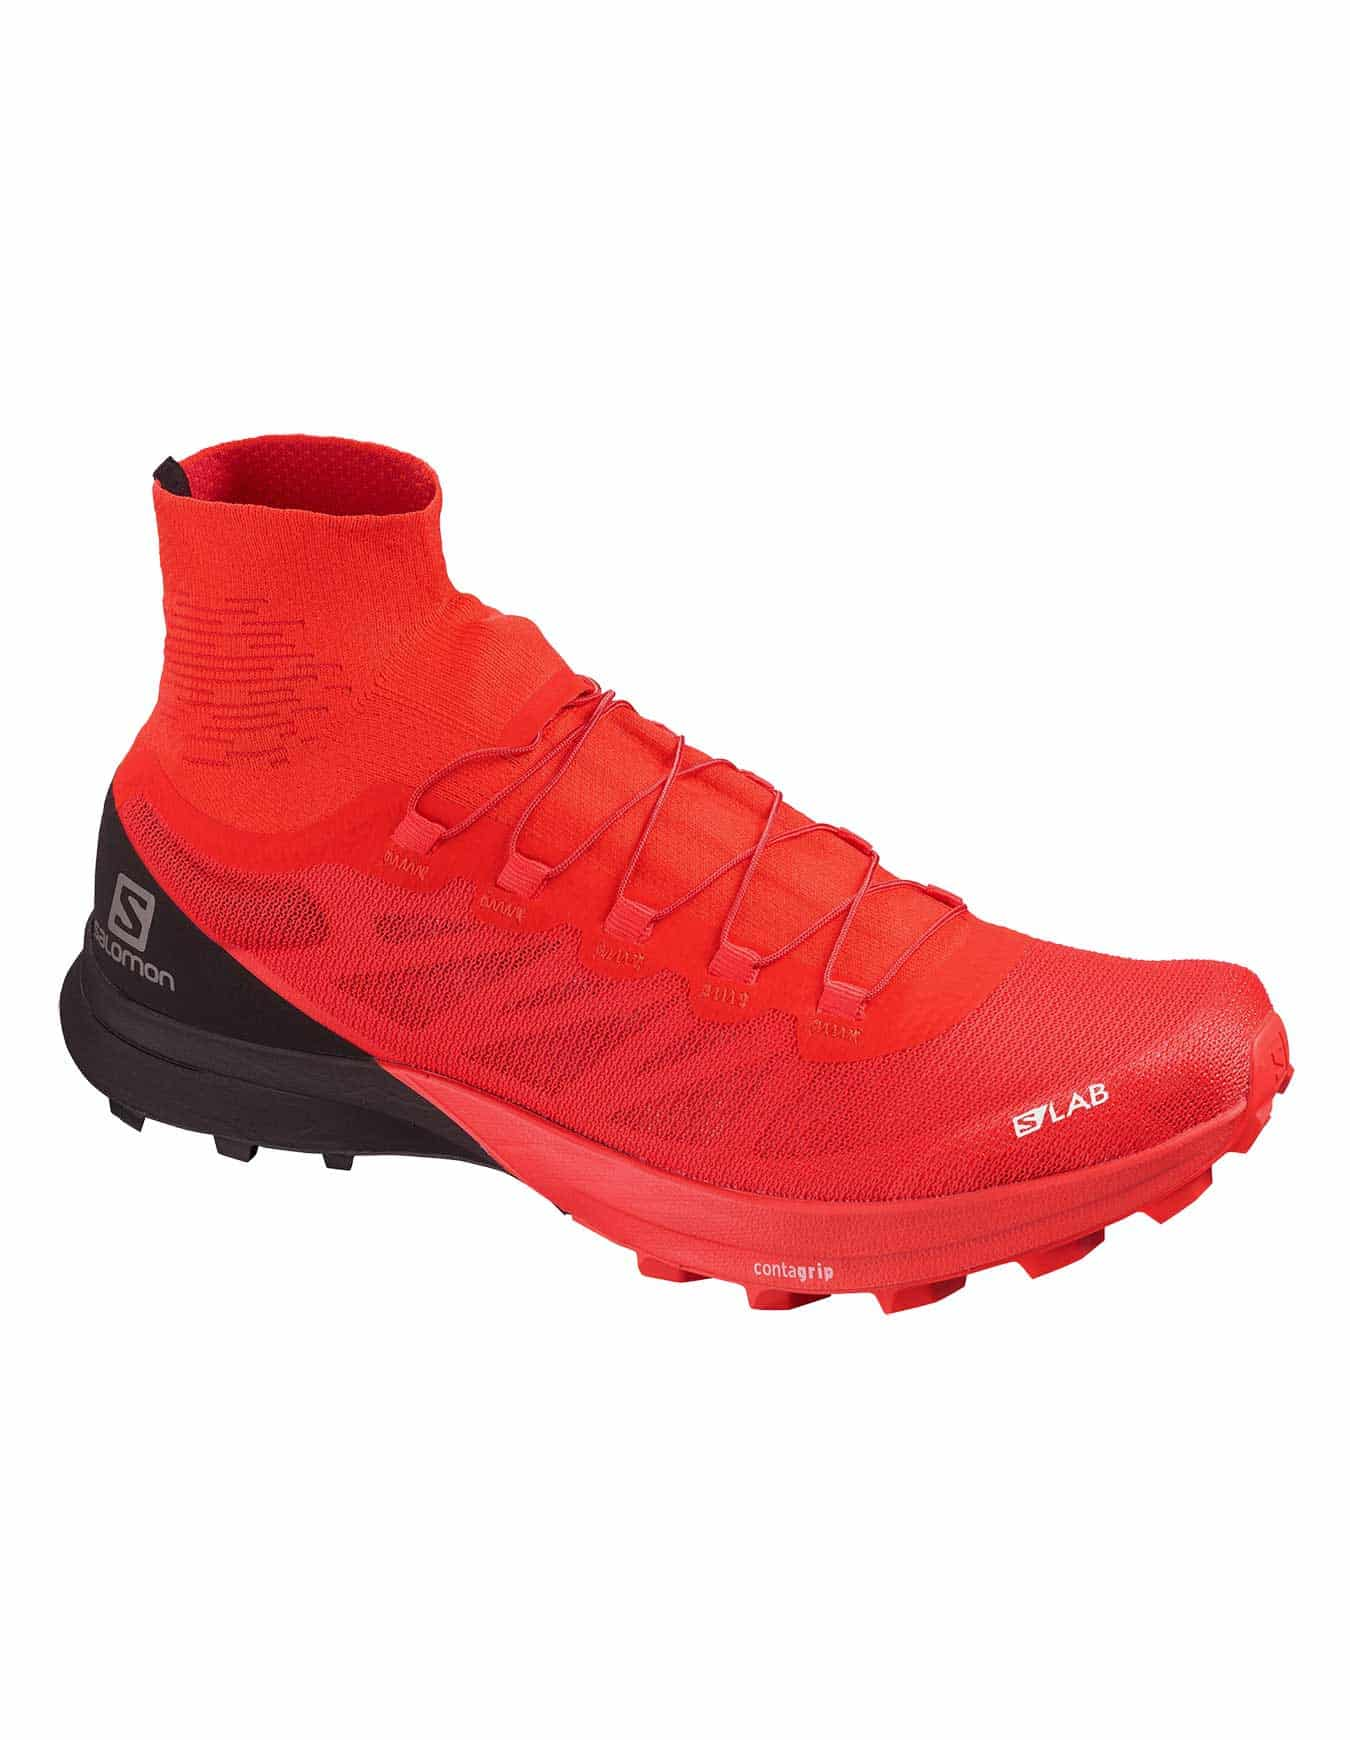 Salomon S/Lab Sense 8 SG : le test